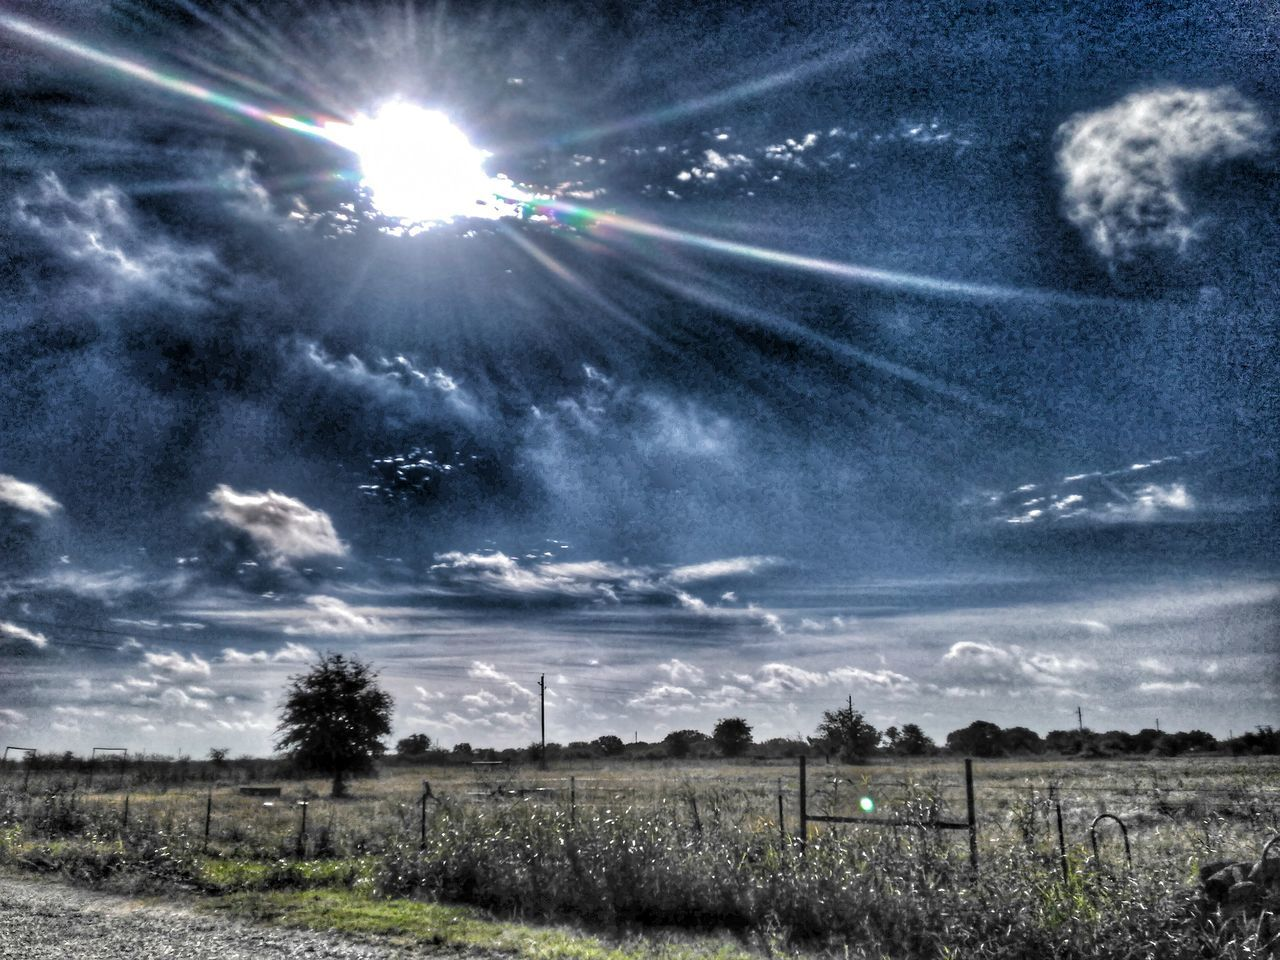 lens flare, sky, outdoors, sun, cloud - sky, no people, sunlight, nature, landscape, day, scenics, beauty in nature, tree, vapor trail